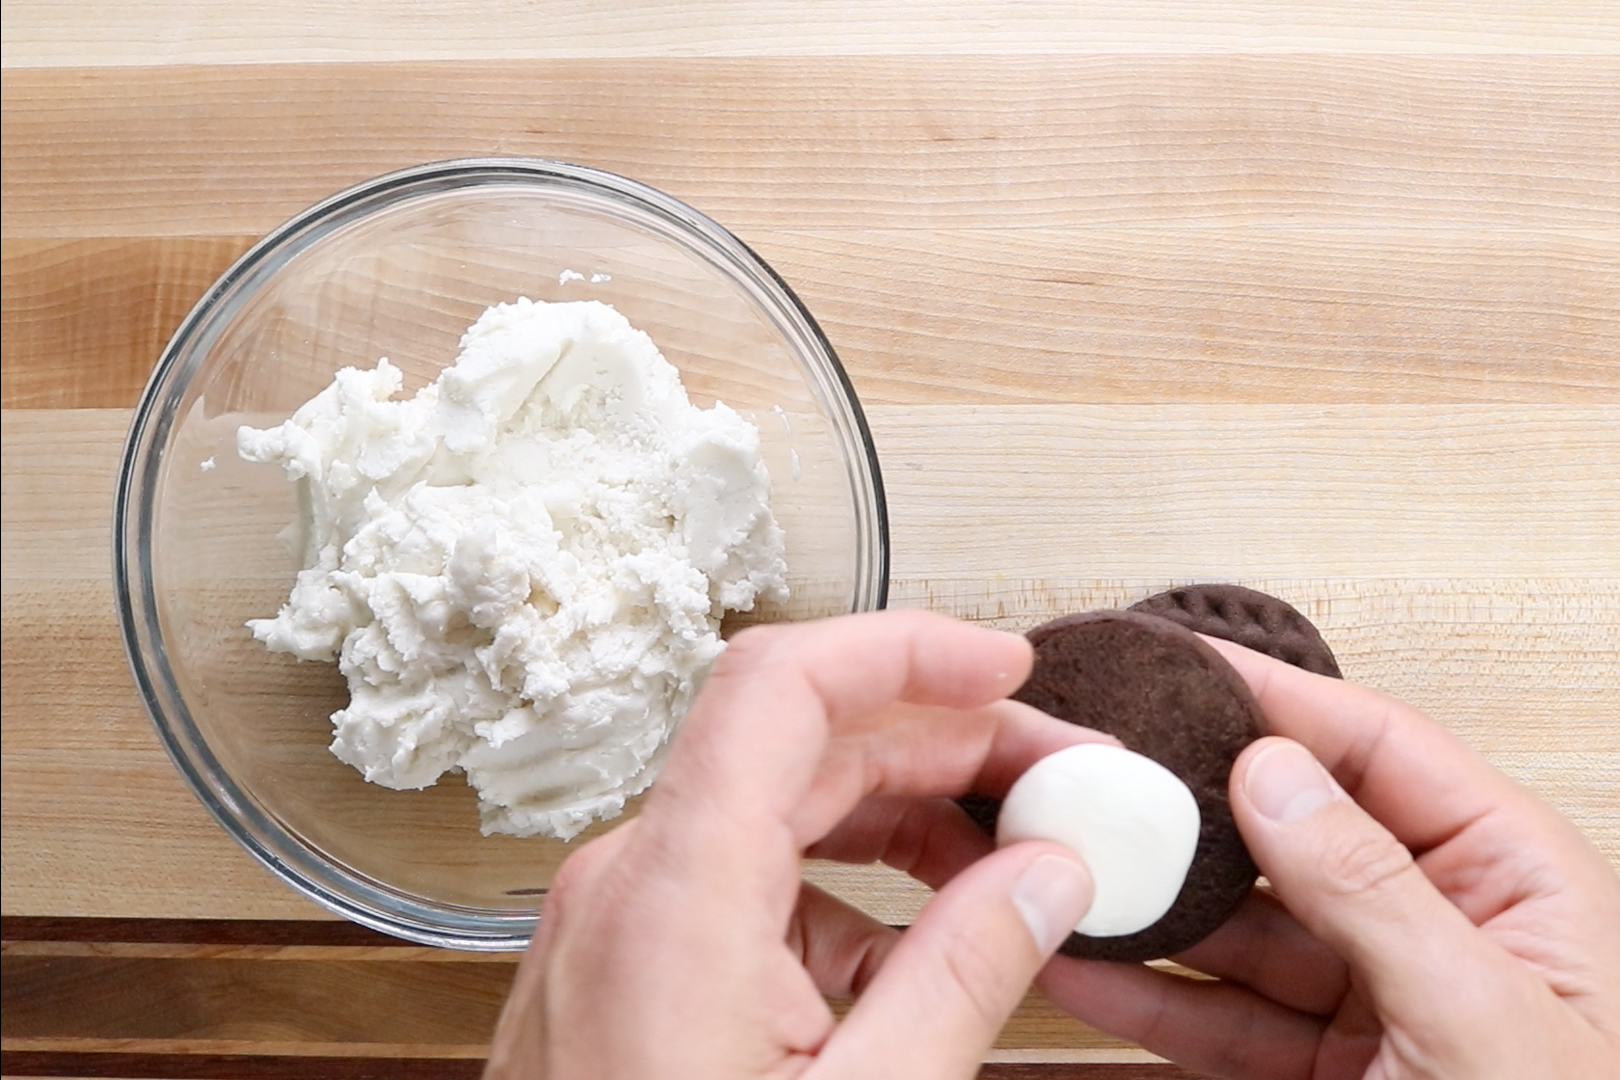 1. Roll a ball of filling between your hands and place on the bottom of one of the cookies. -